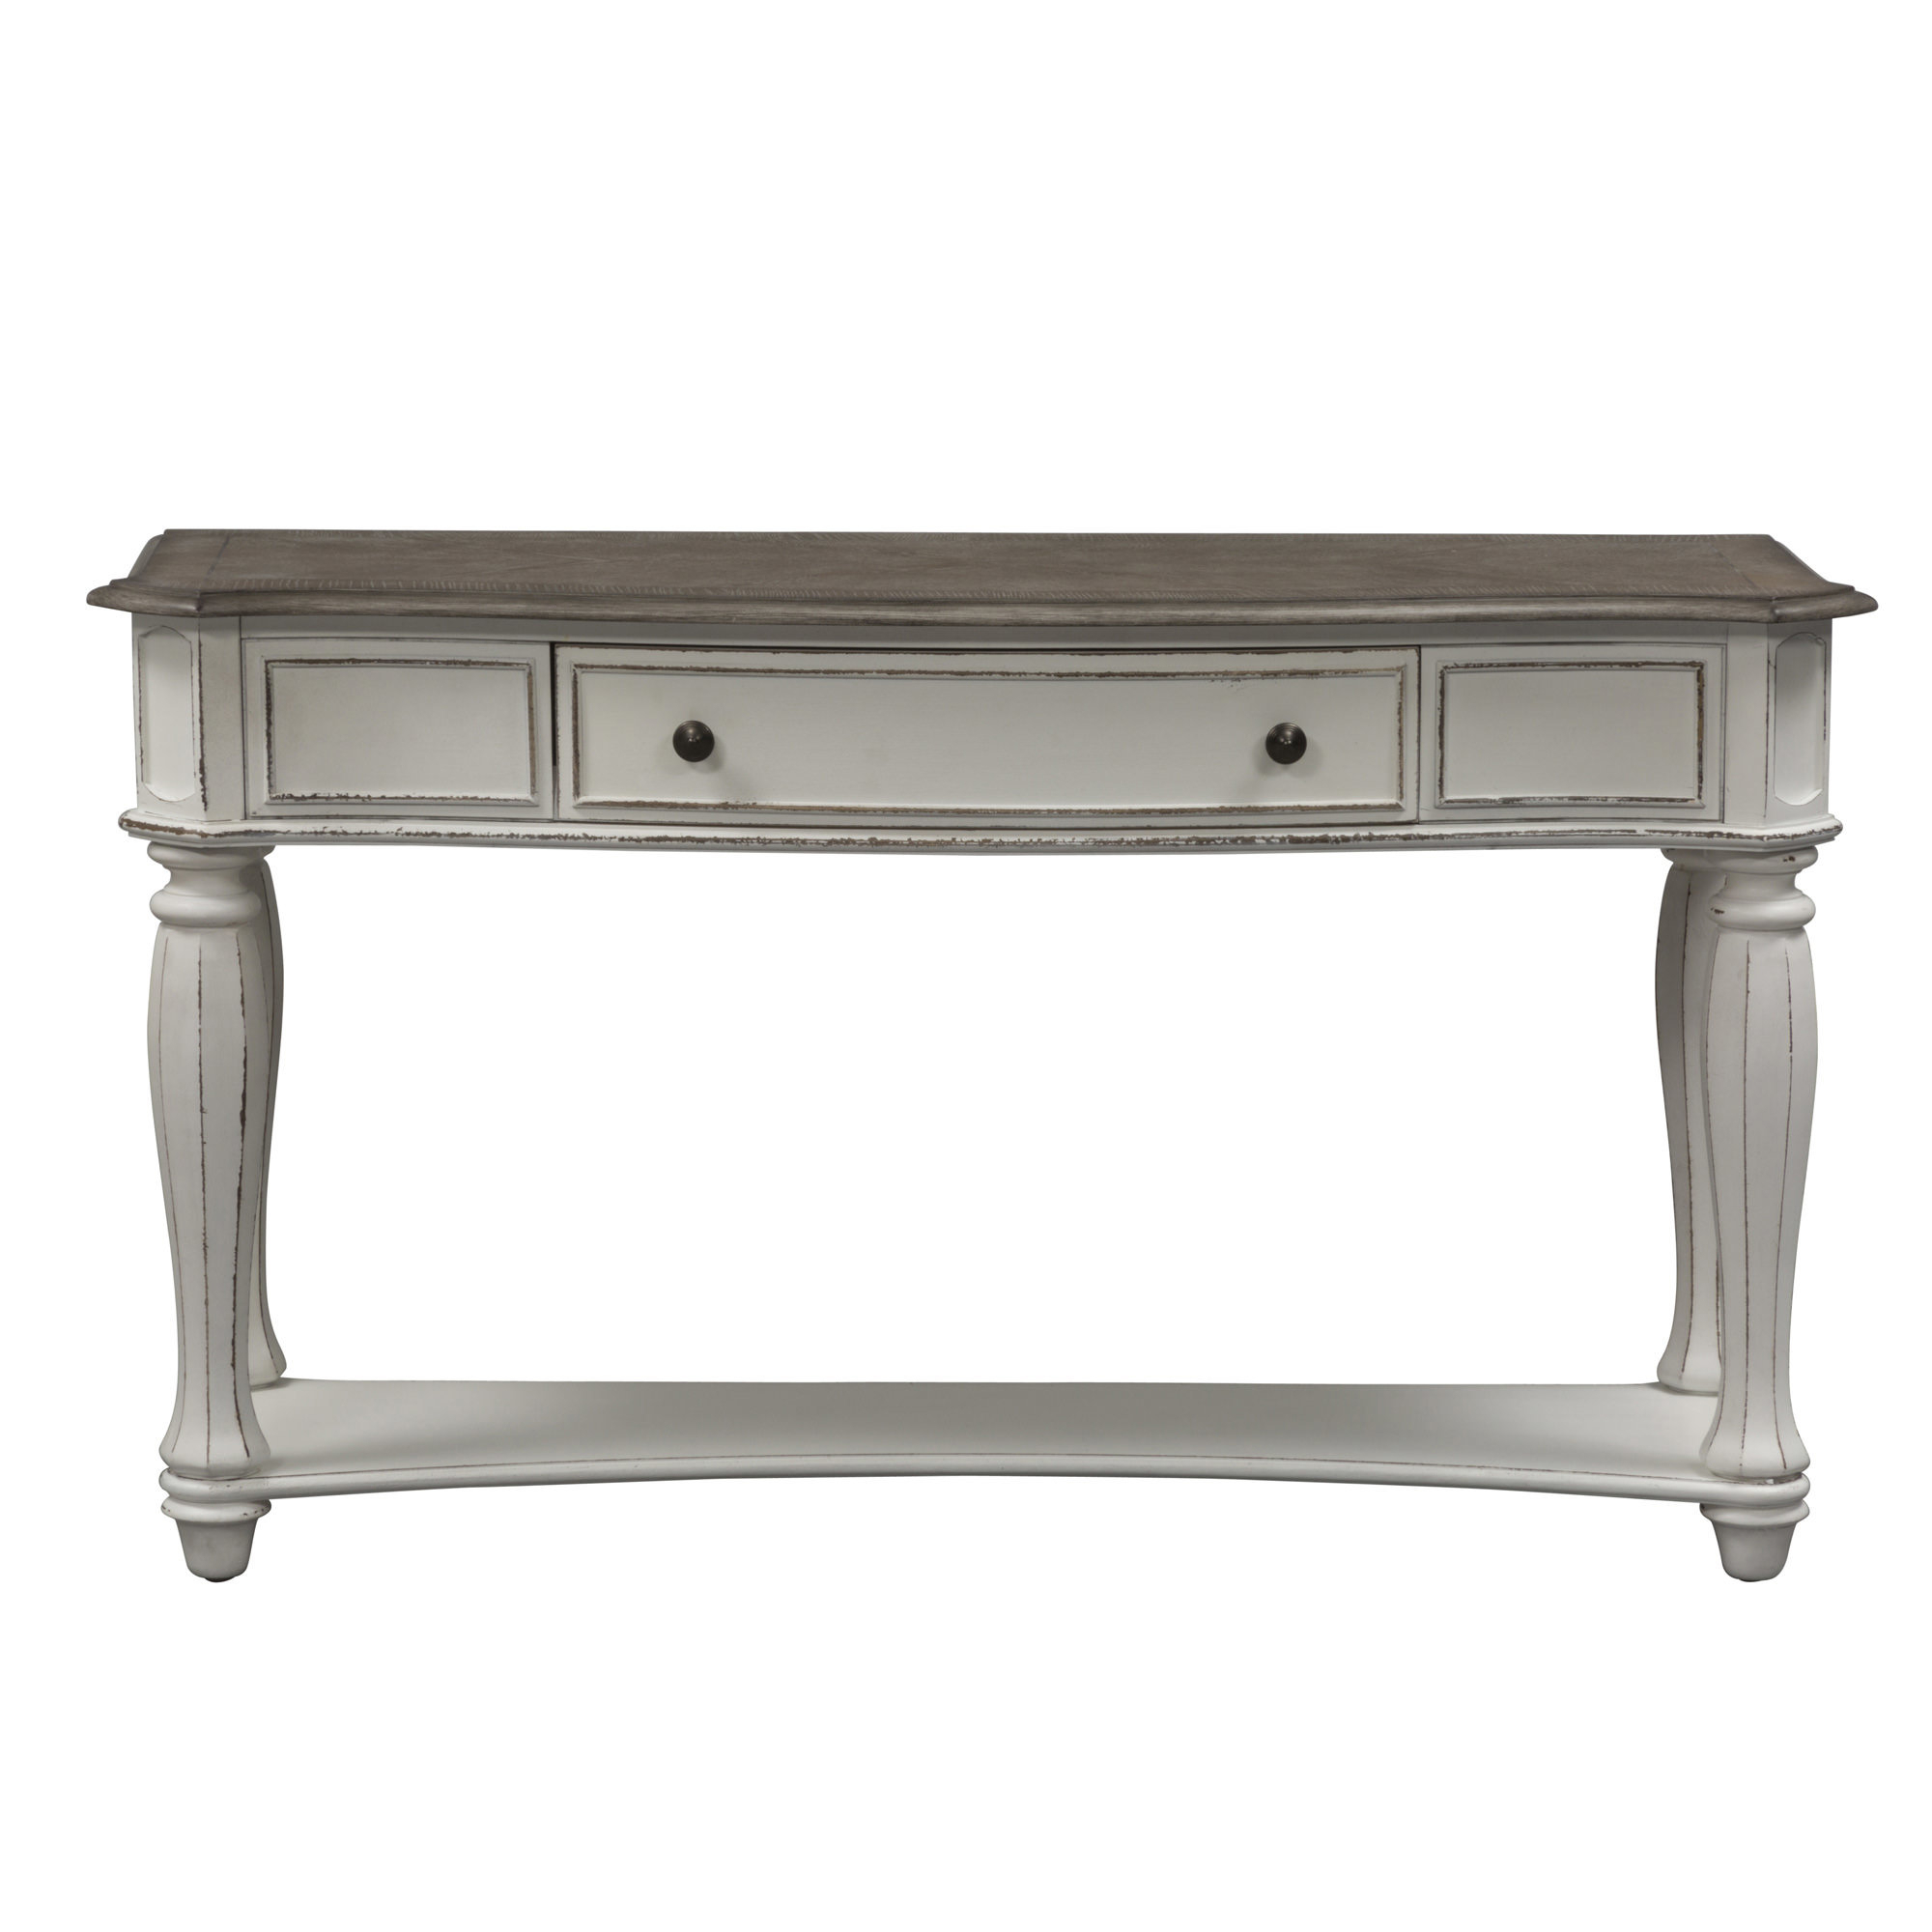 Console, Sofa, And Entryway Tables | Joss & Main within Mix Agate Metal Frame Console Tables (Image 9 of 30)